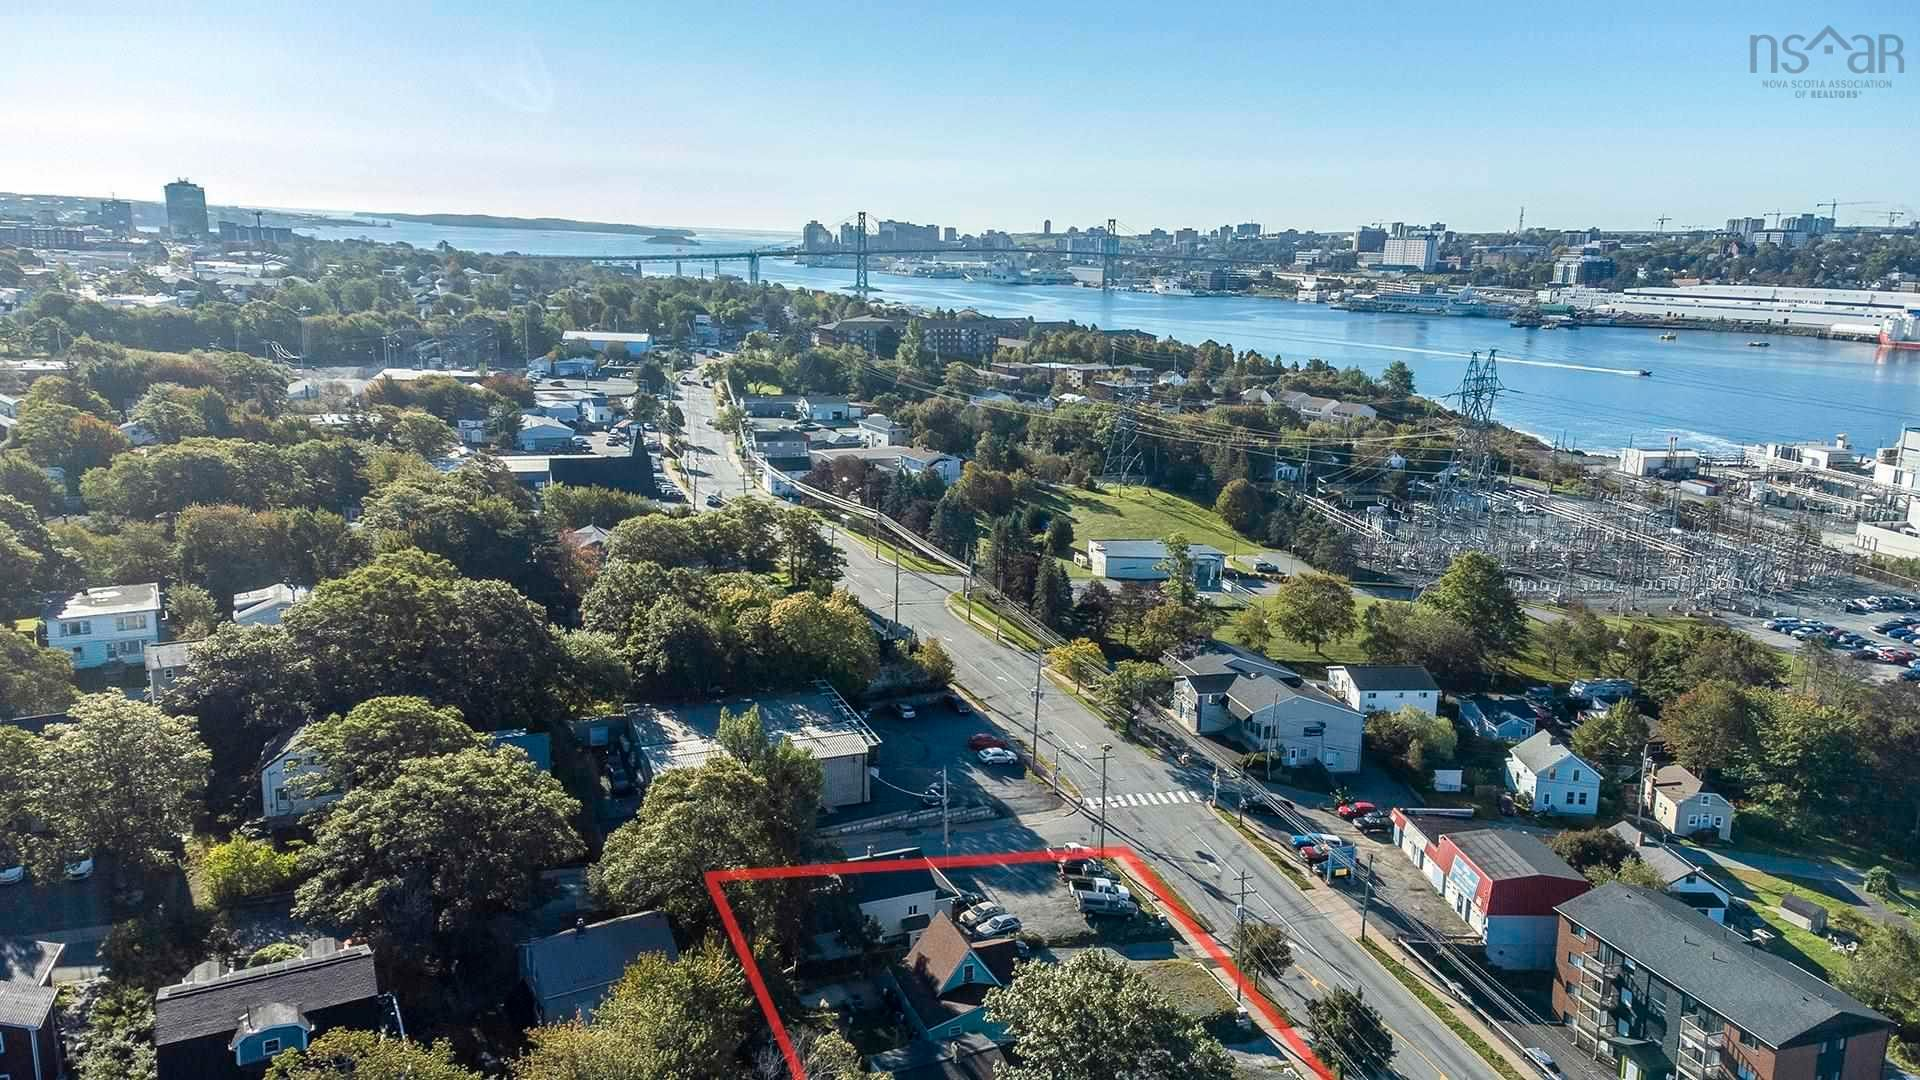 Main Photo: 330/332/334 Windmill Road in Dartmouth: 10-Dartmouth Downtown To Burnside Residential for sale (Halifax-Dartmouth)  : MLS®# 202125779